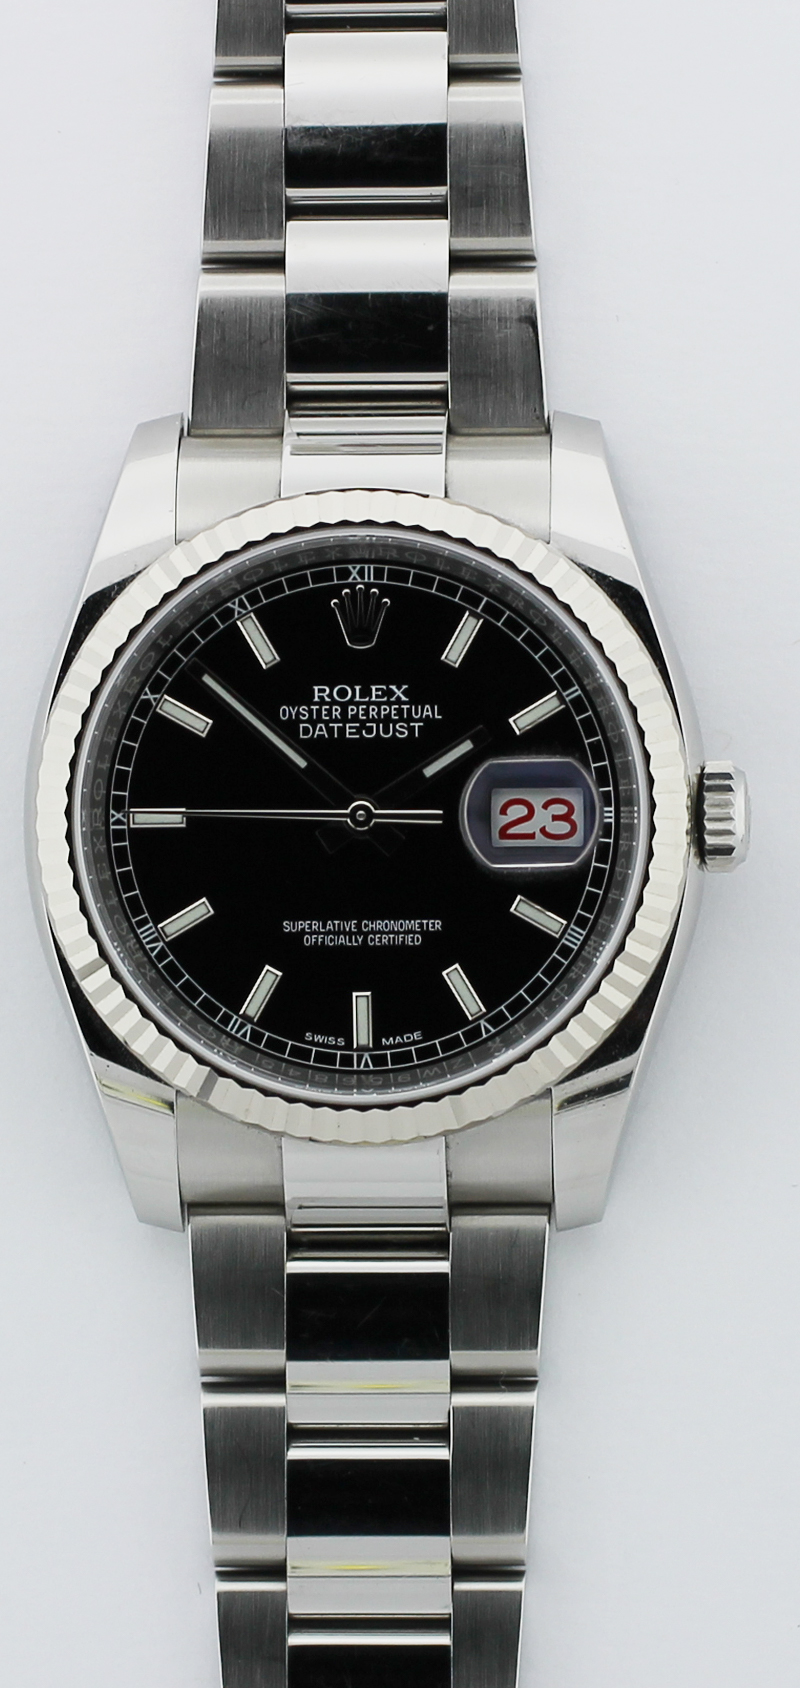 Rolex Steel Datejust Black Dial 116234 with Box & Card